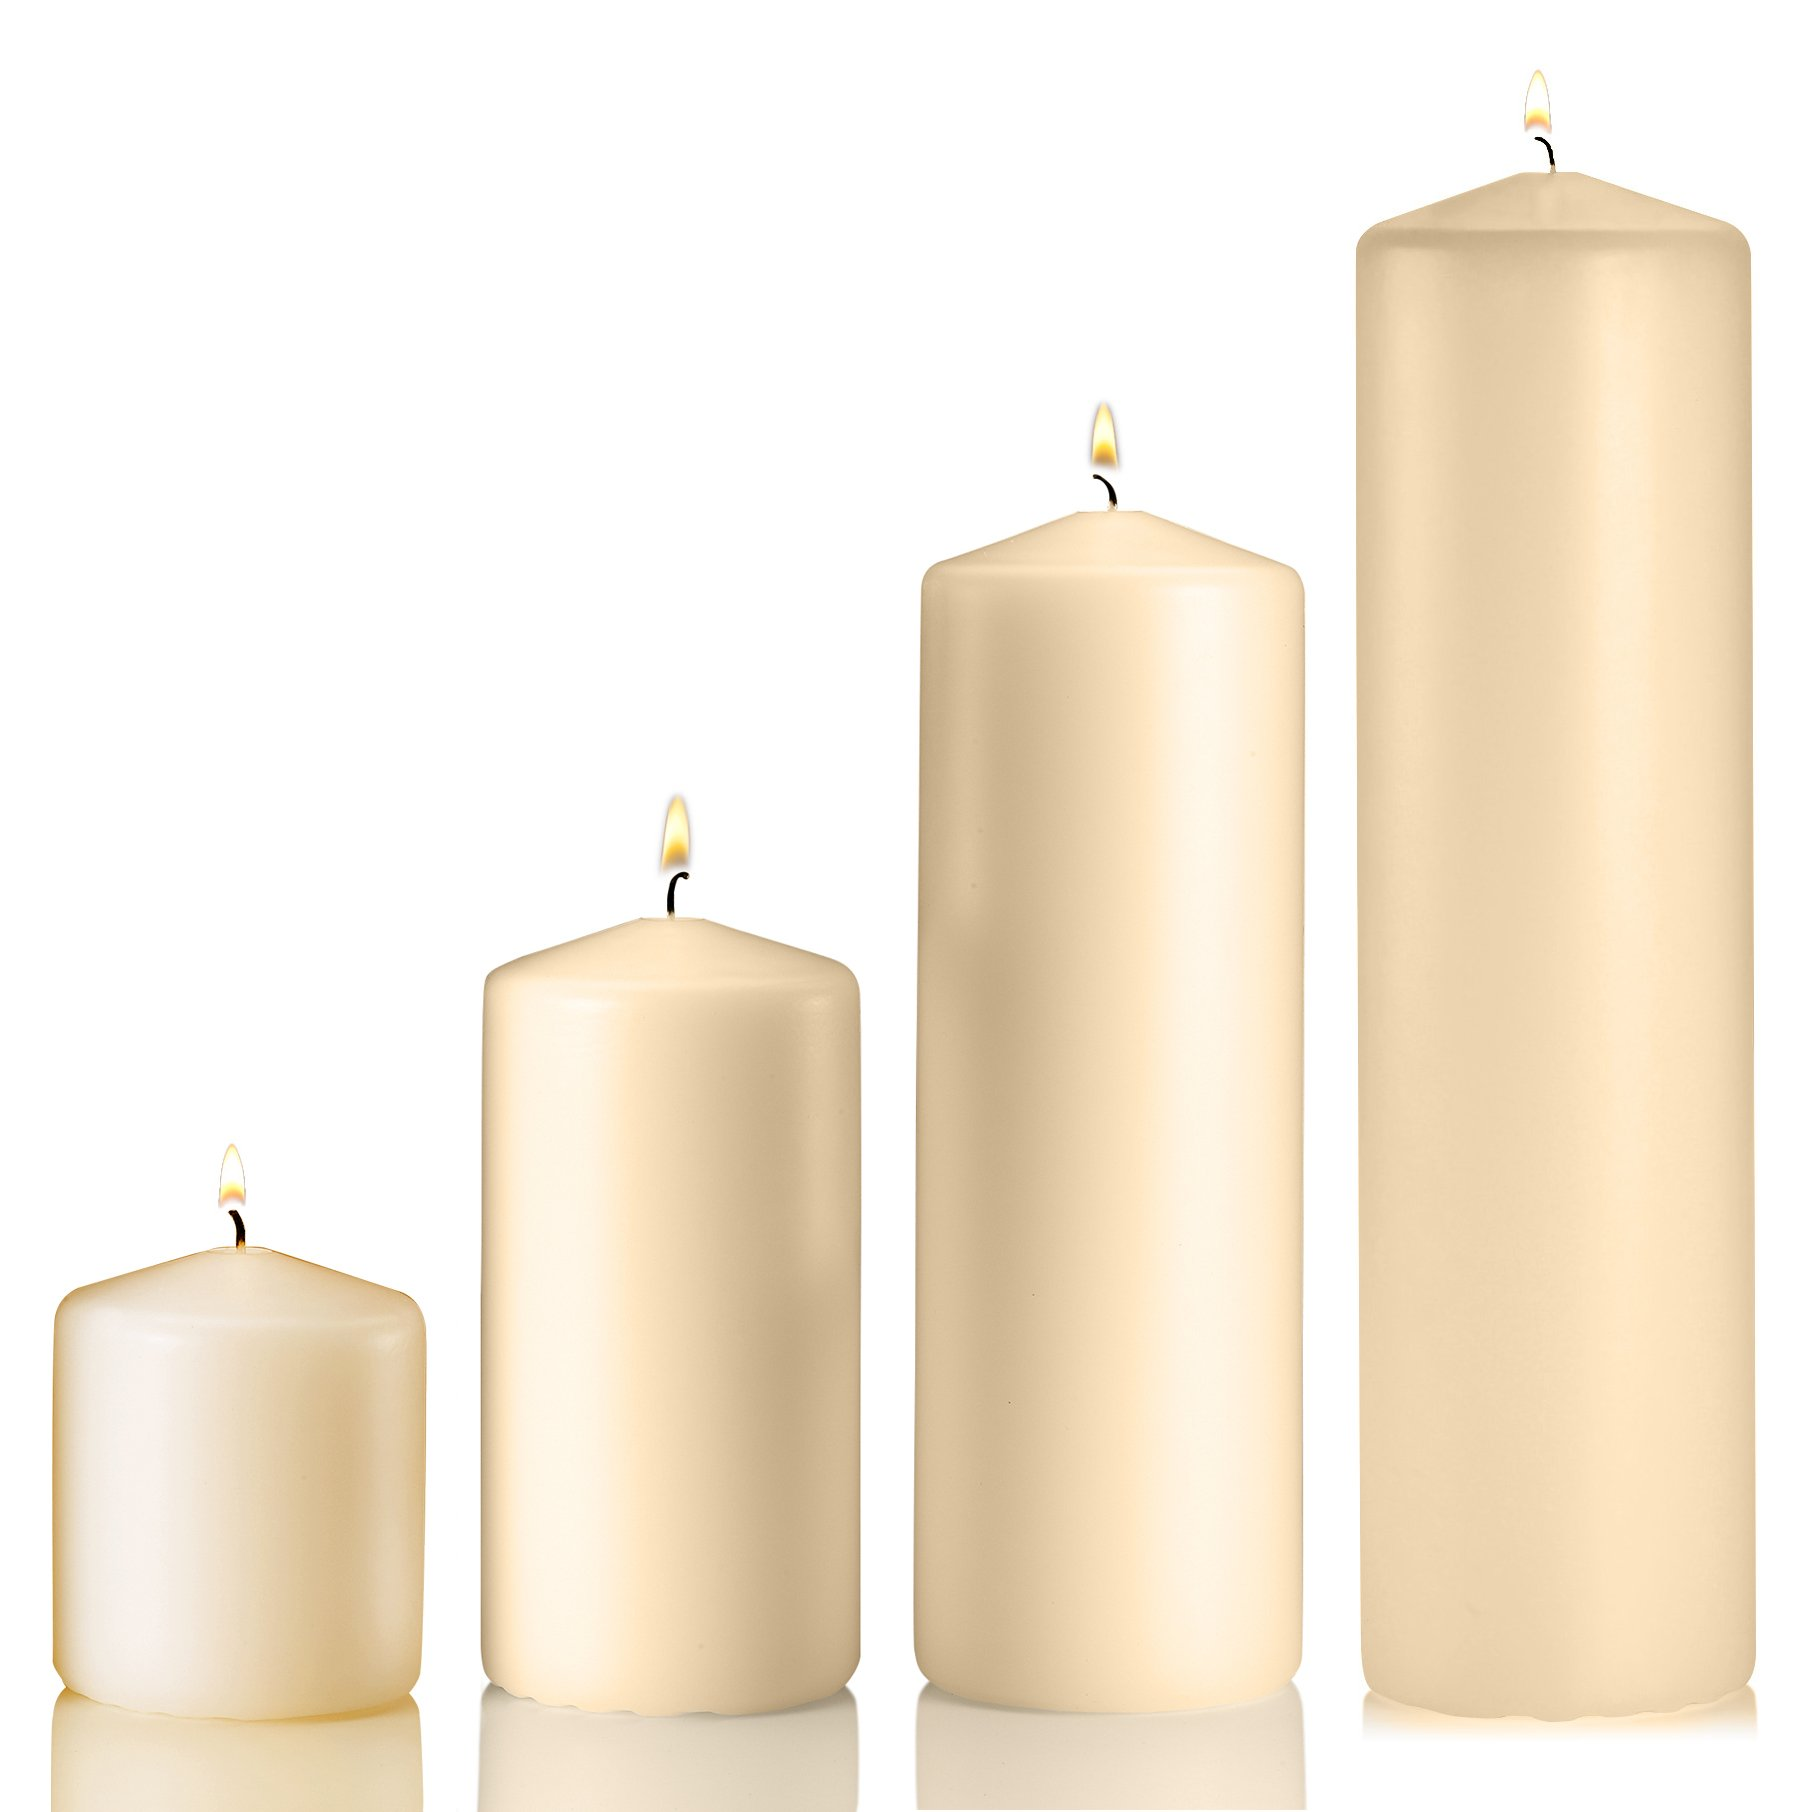 Set of 4 Unscented Pillar Candles - 3x3 Inch, 3x6 Inch, 3x9 Inch, 3x12 Inch - Extra Long Burn Time - Ideal for Wedding, Restaurants, Spa, Hotels, Home Décor. (Vanilla)